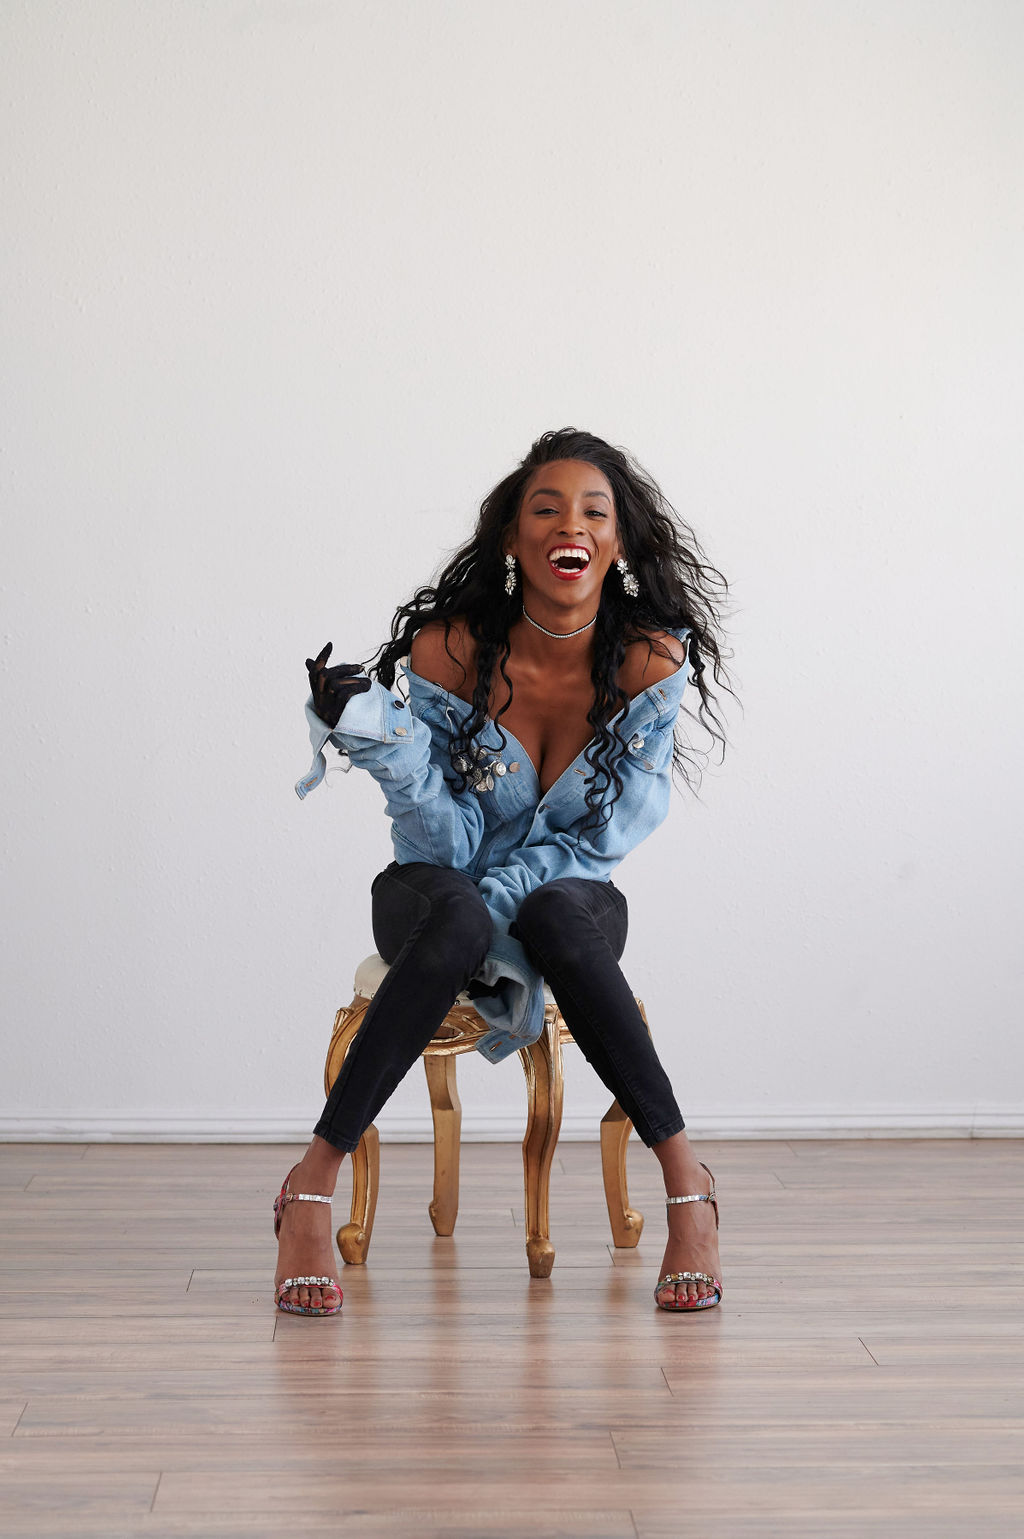 Annjulia Smalls In Y Project-styled by melissa-lcm-sheldon botler photography-denim jacket-elongated sleeves-high fashion-black girl magic-laughs